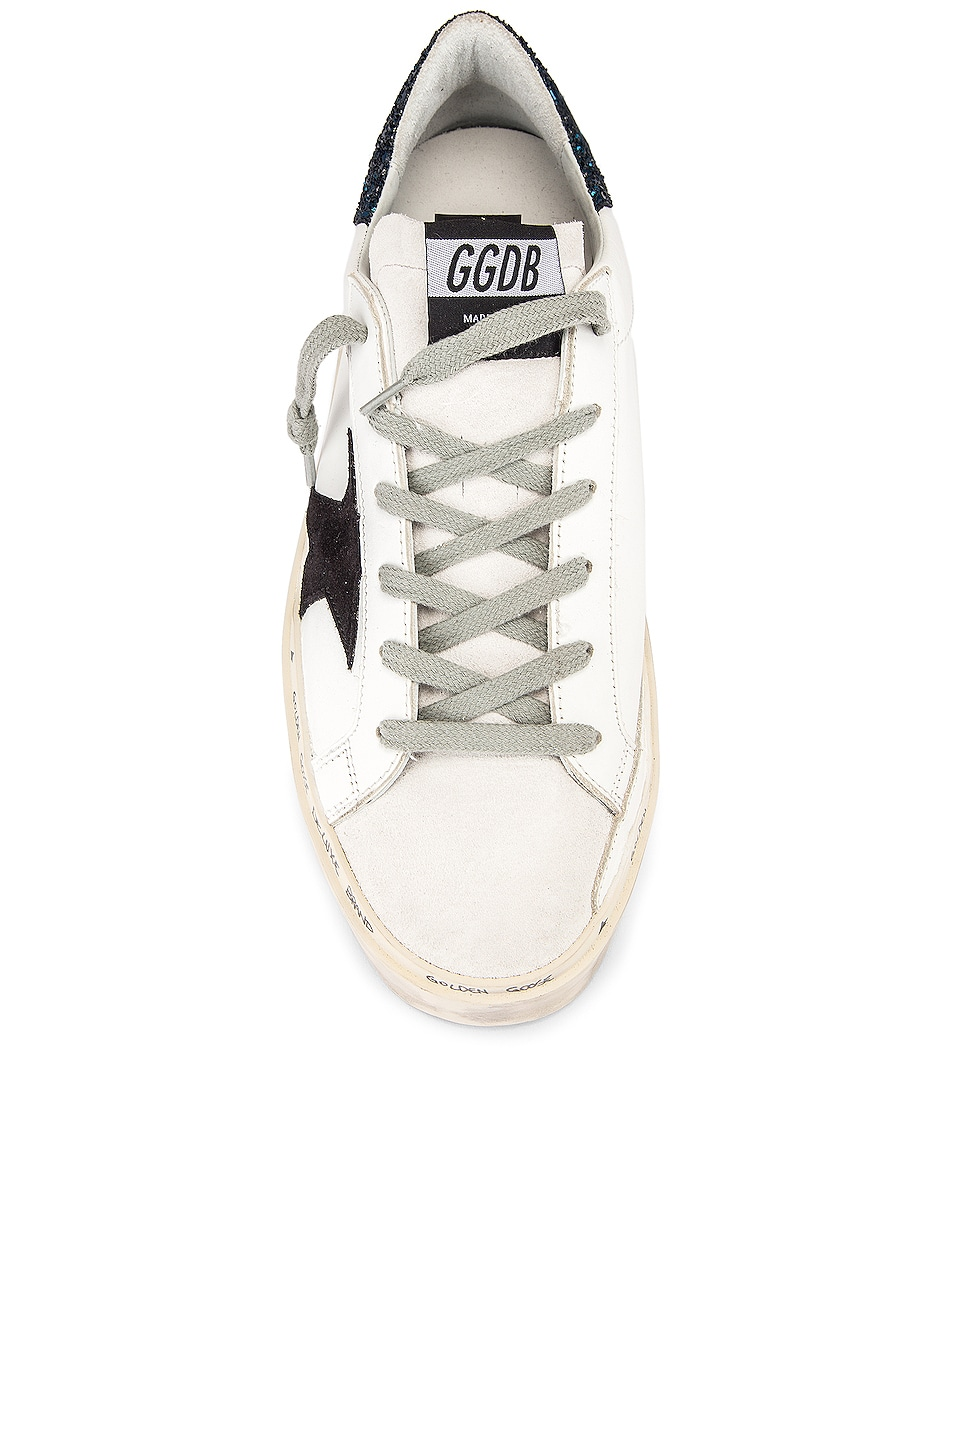 Image 4 of Golden Goose Hi Star Sneaker in White, Black & Blue Glitter